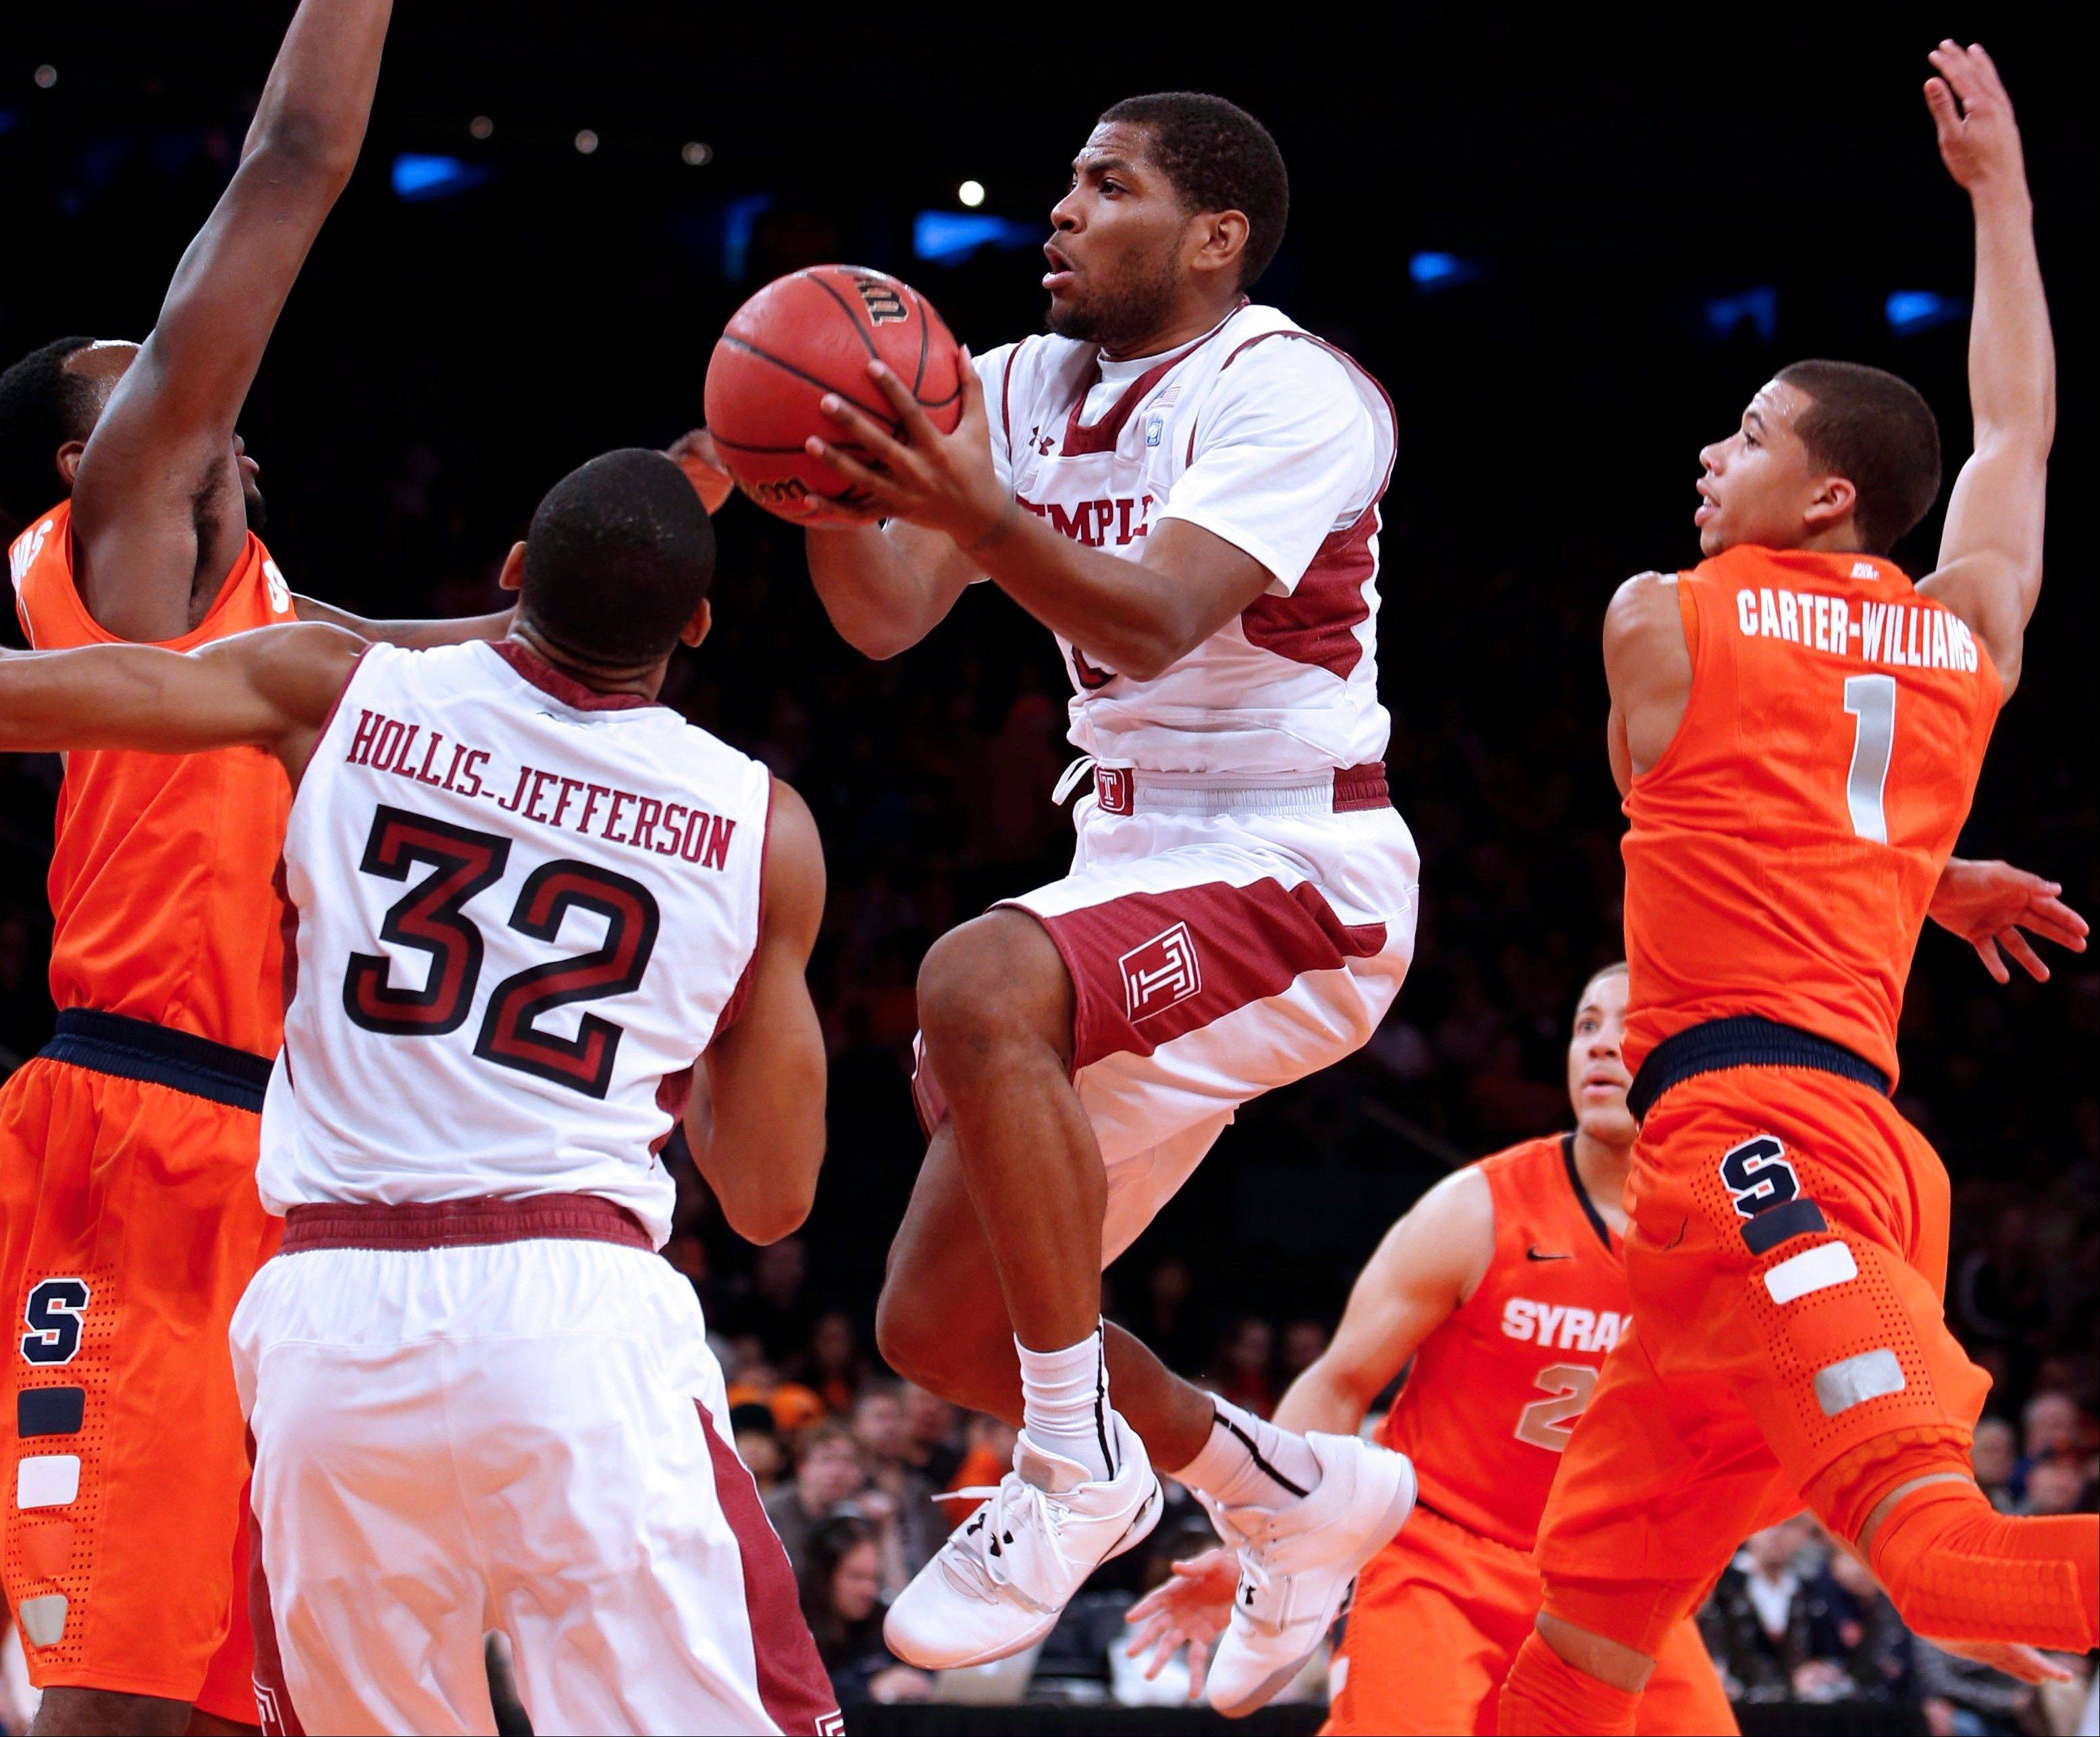 Temple's Khalif Wyatt shoots against Syracuse's Rakeem Christmas, left, and Michael Carter-Williams (1) during the first half in the Gotham Classic tournament at Madison Square Garden, Saturday in New York. Temple defeated Syracuse 83-79.